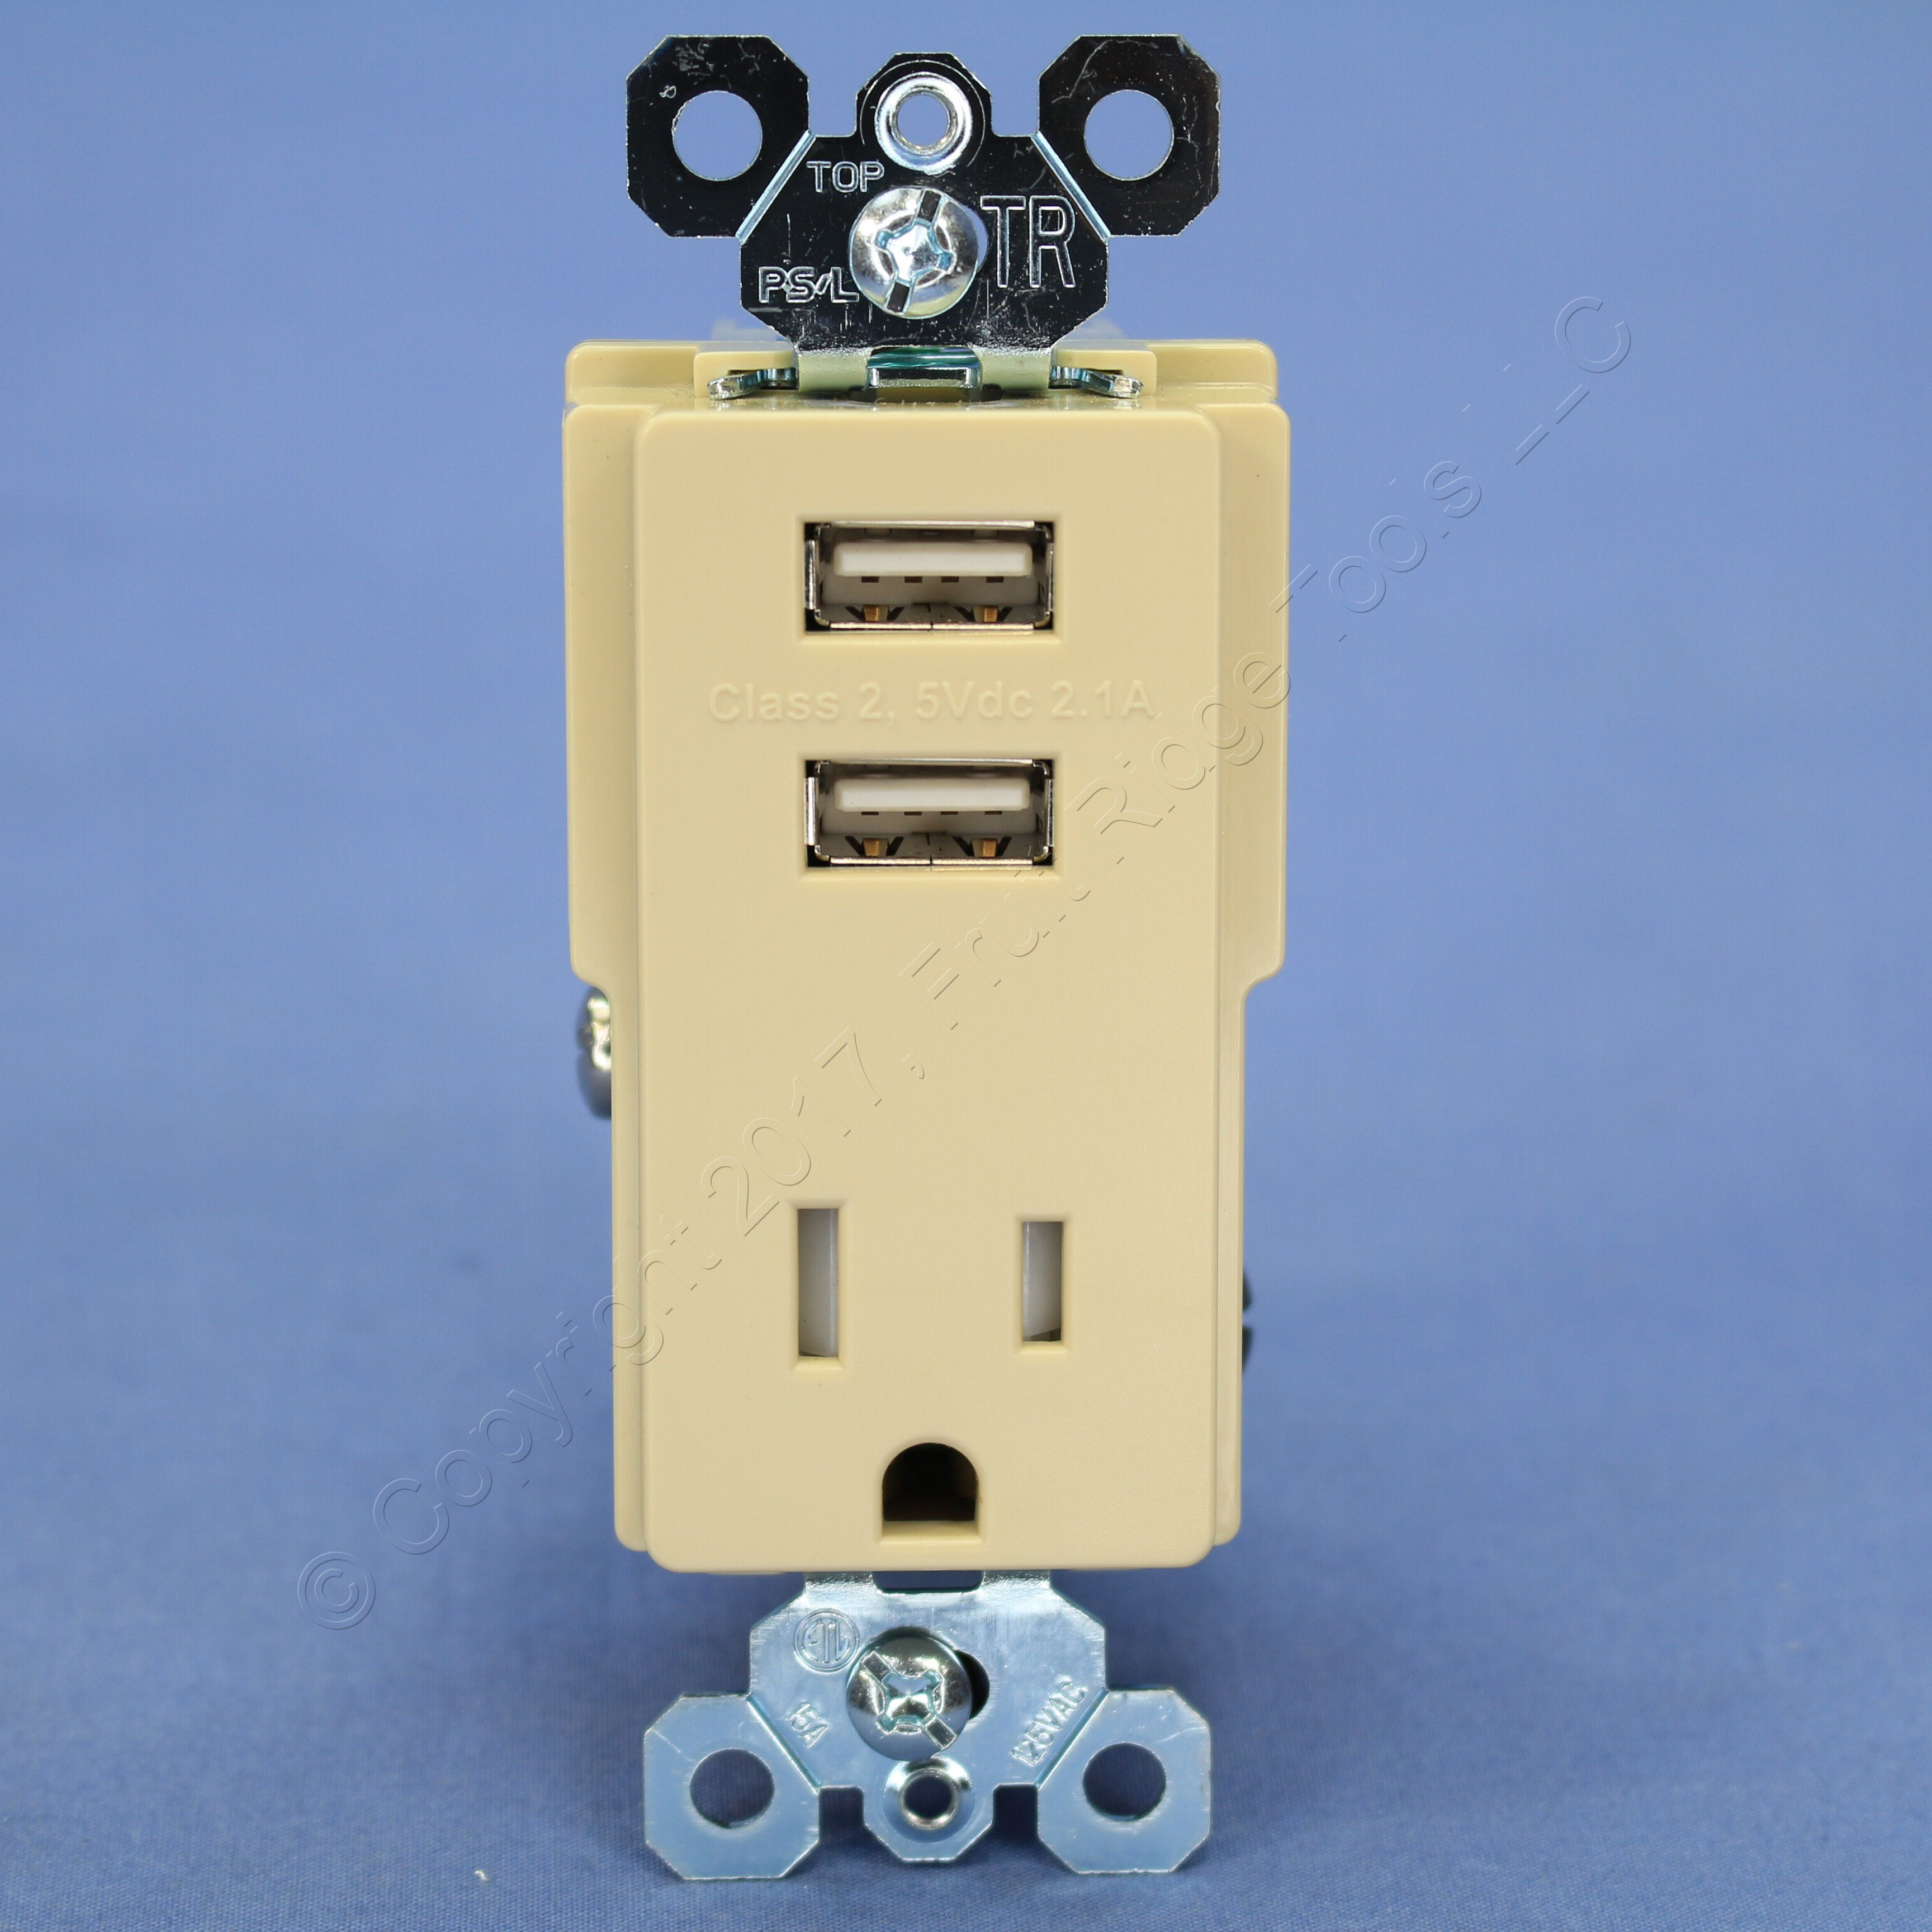 Ivory Electrical Outlets Light Switches 15a Gfi Outlet Ps Tamper Resistant 5 15r 125v Receptacle 21a Usb Charger